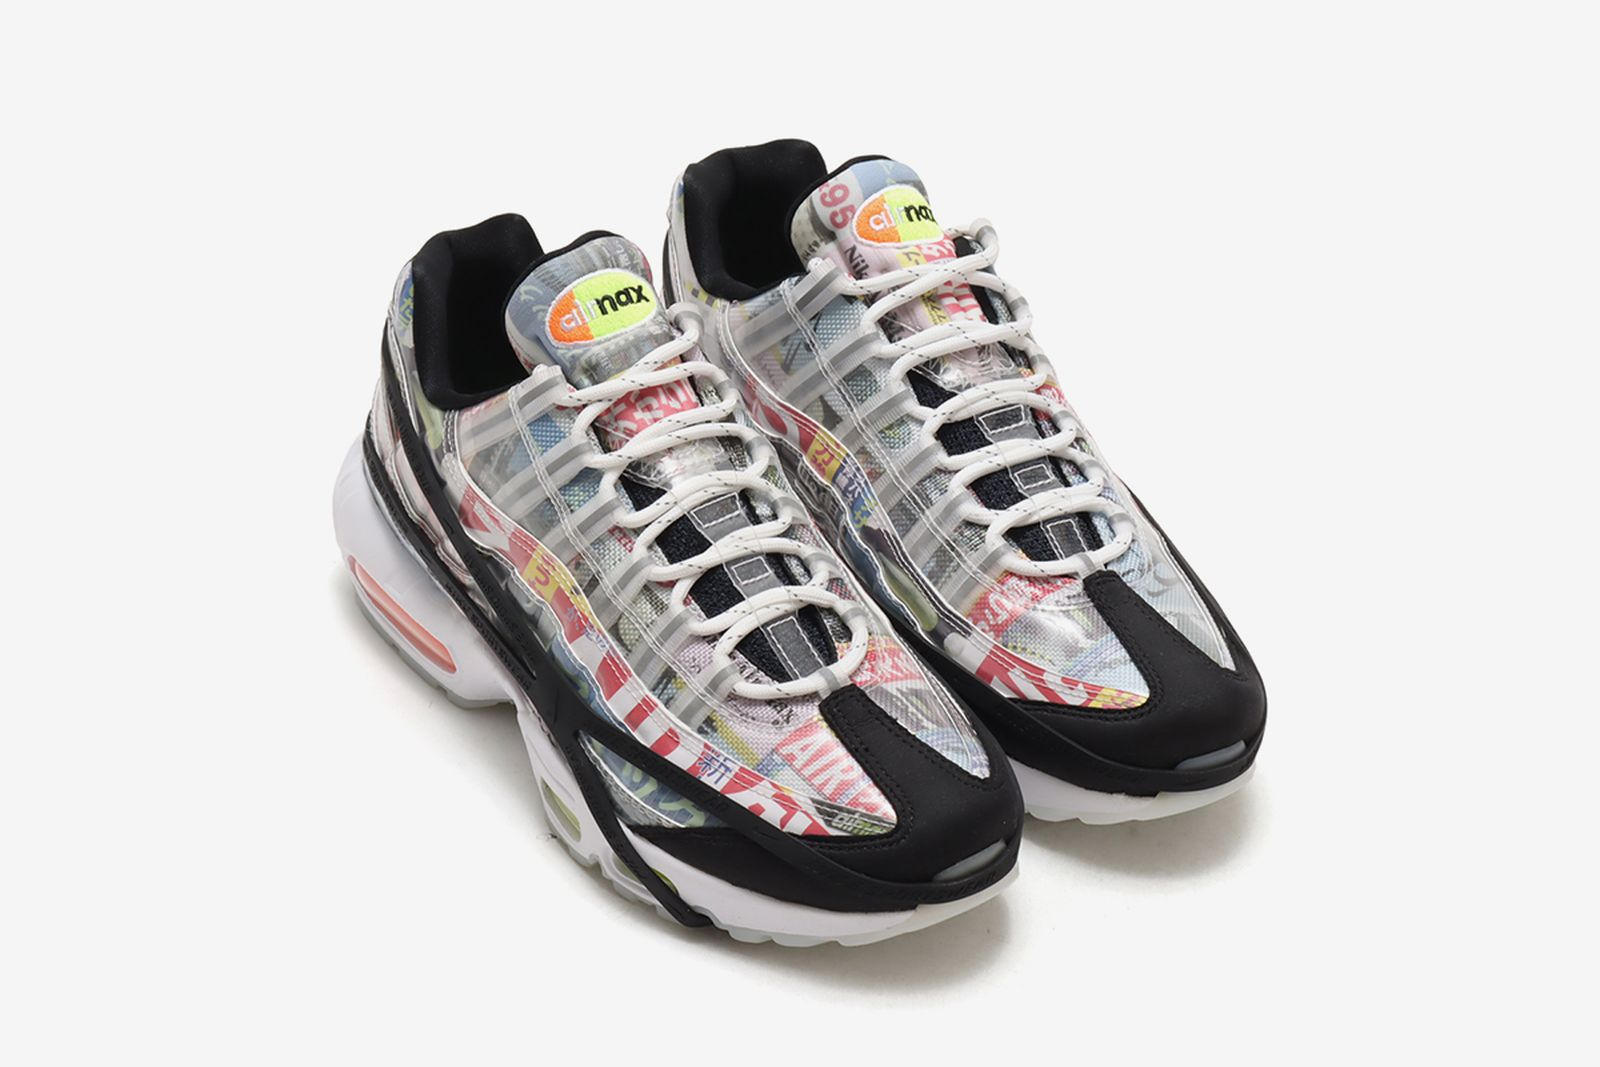 nike-air-max-convenience-store-collection-release-info-12